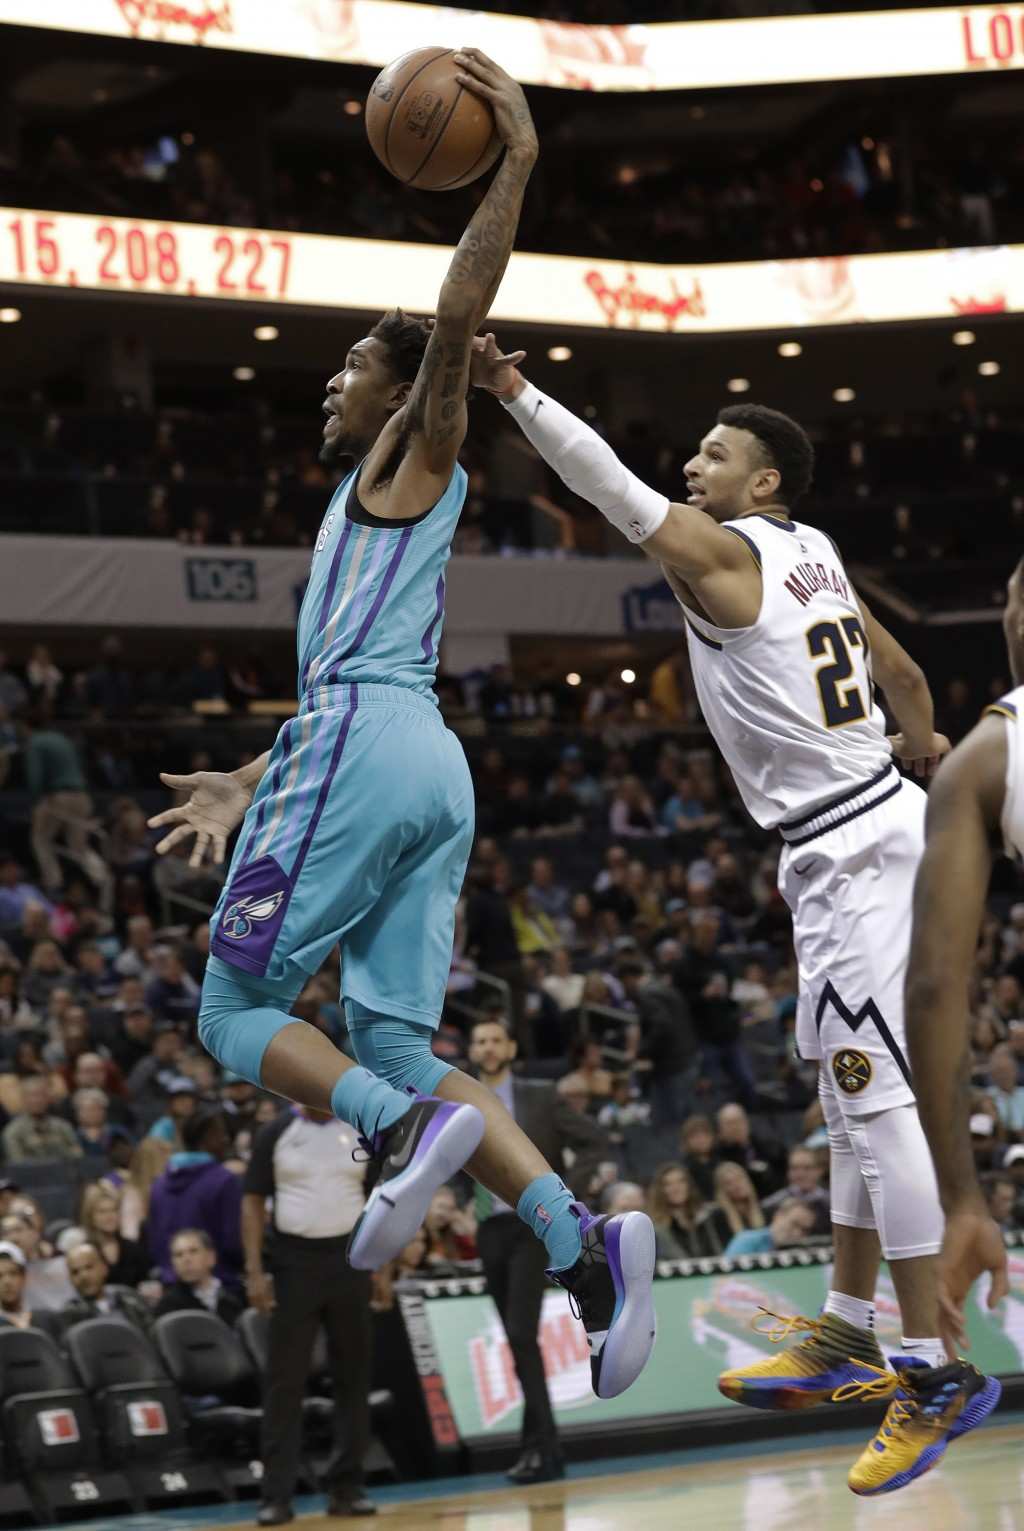 Charlotte Hornets' Malik Monk, left, drives past Denver Nuggets' Jamal Murray, right, during the first half of an NBA basketball game in Charlotte, N.